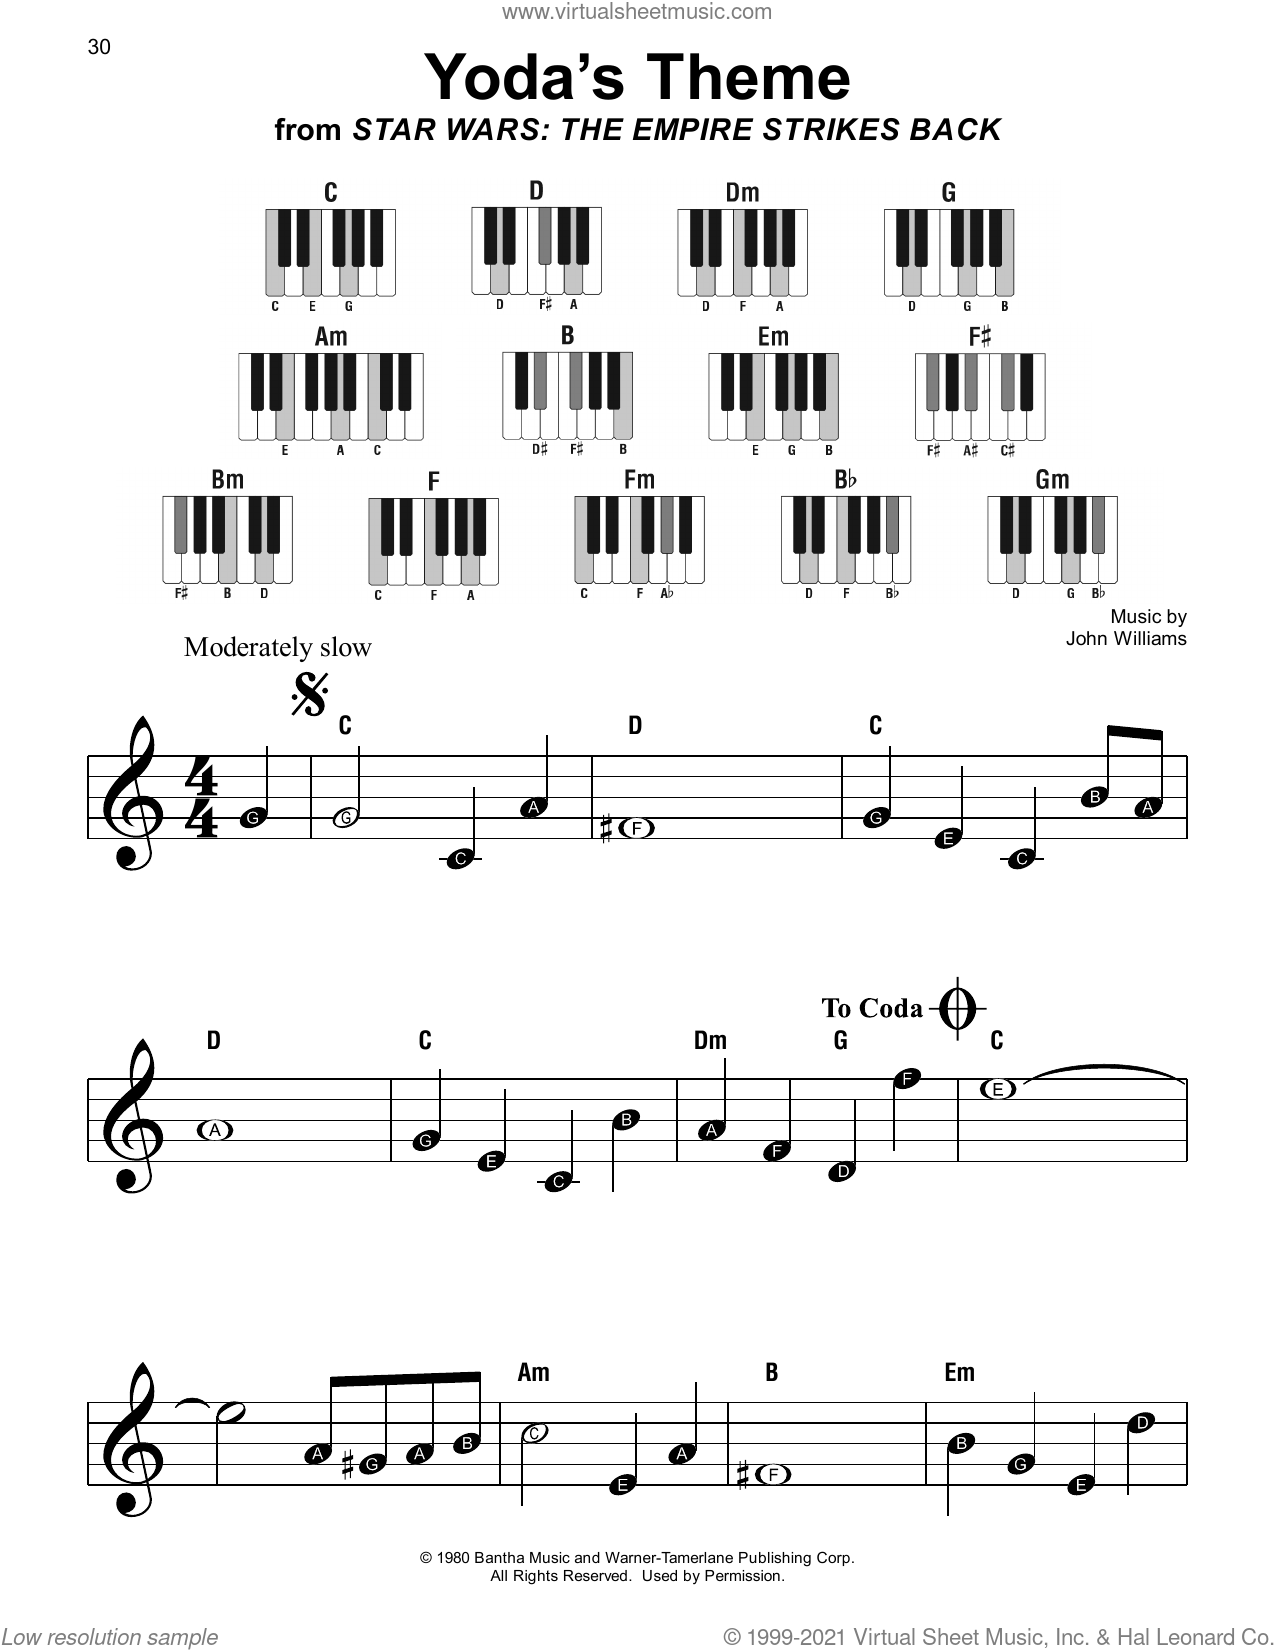 Yoda's Theme (from Star Wars: The Empire Strikes Back) sheet music for piano solo by John Williams, beginner skill level